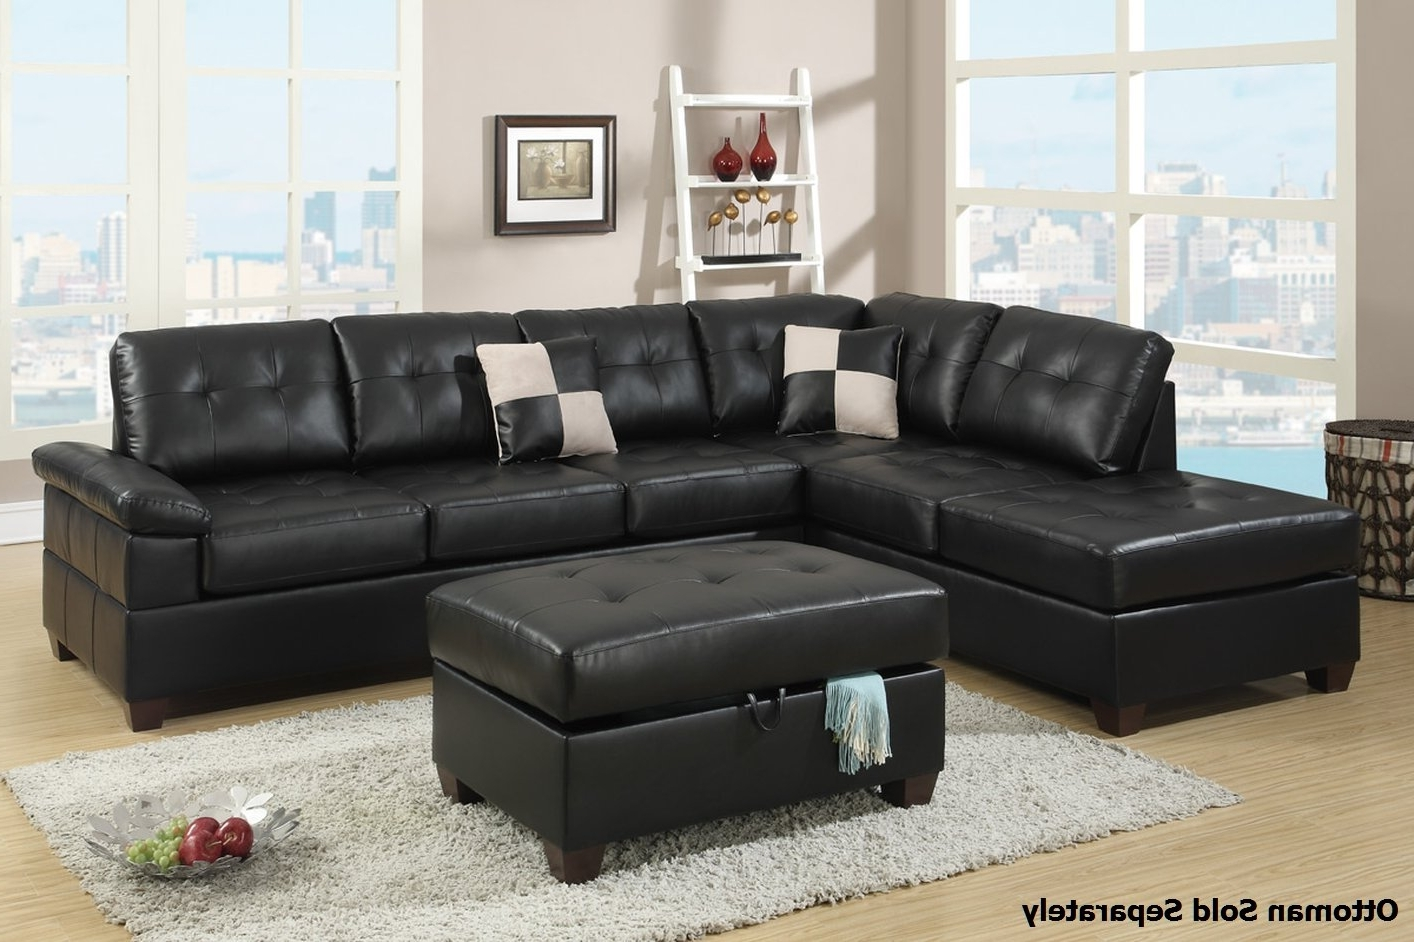 Sectional Sofas At Rooms To Go With Regard To Trendy Beautiful Sectional Sofas Rooms To Go 77 For Office Sofa Ideas (View 8 of 20)